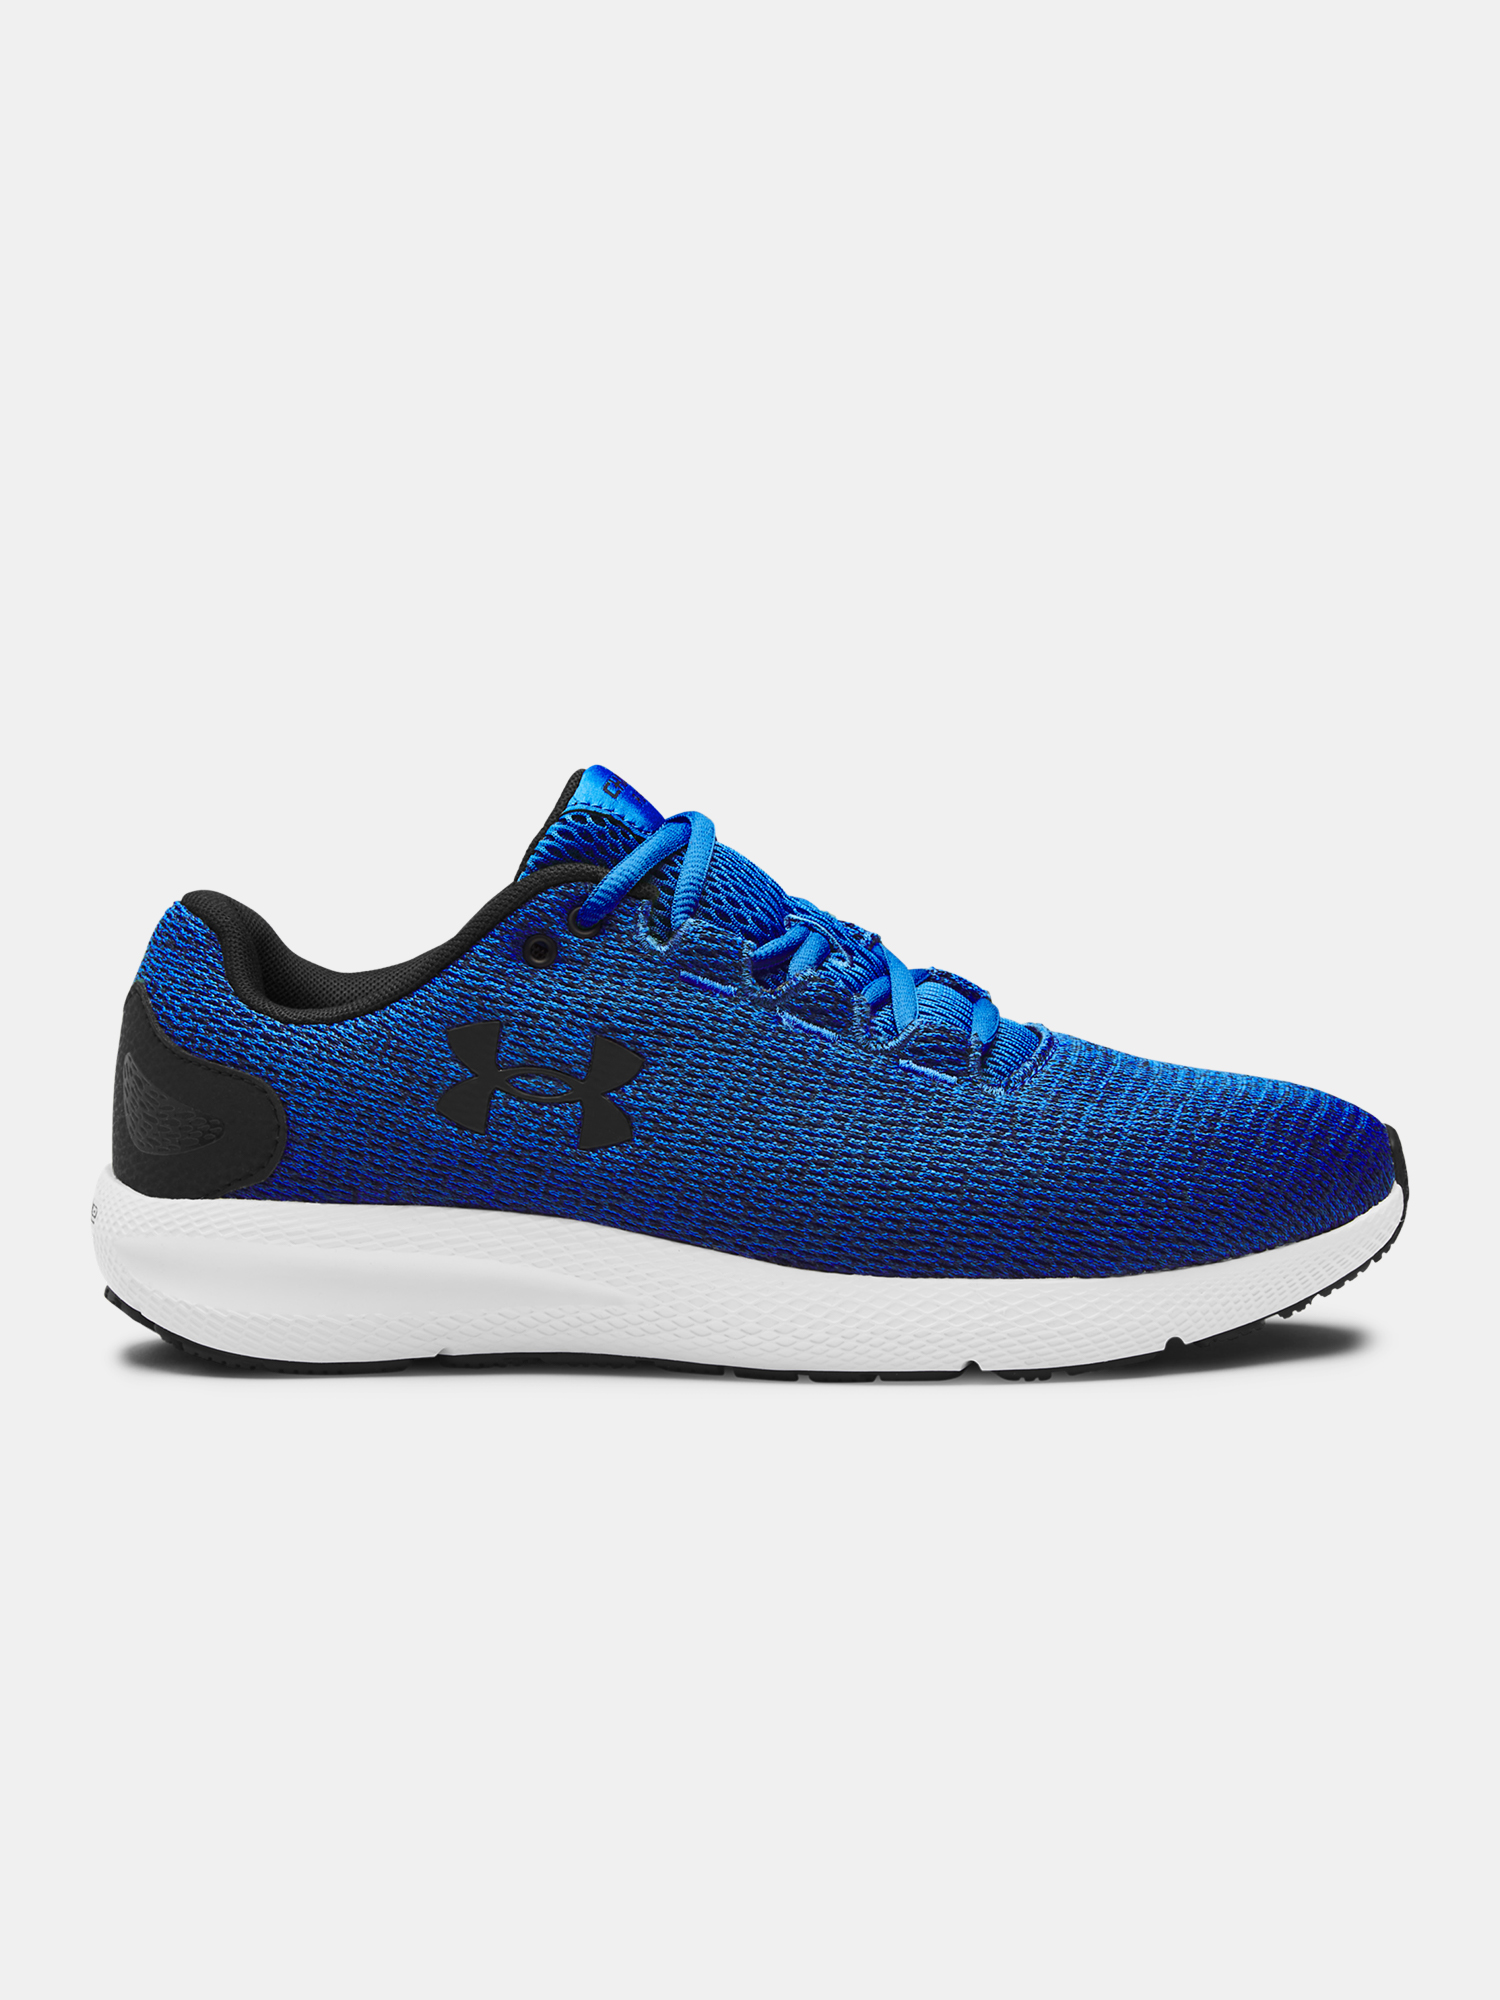 Boty Under Armour Charged Pursuit 2 Twist (1)